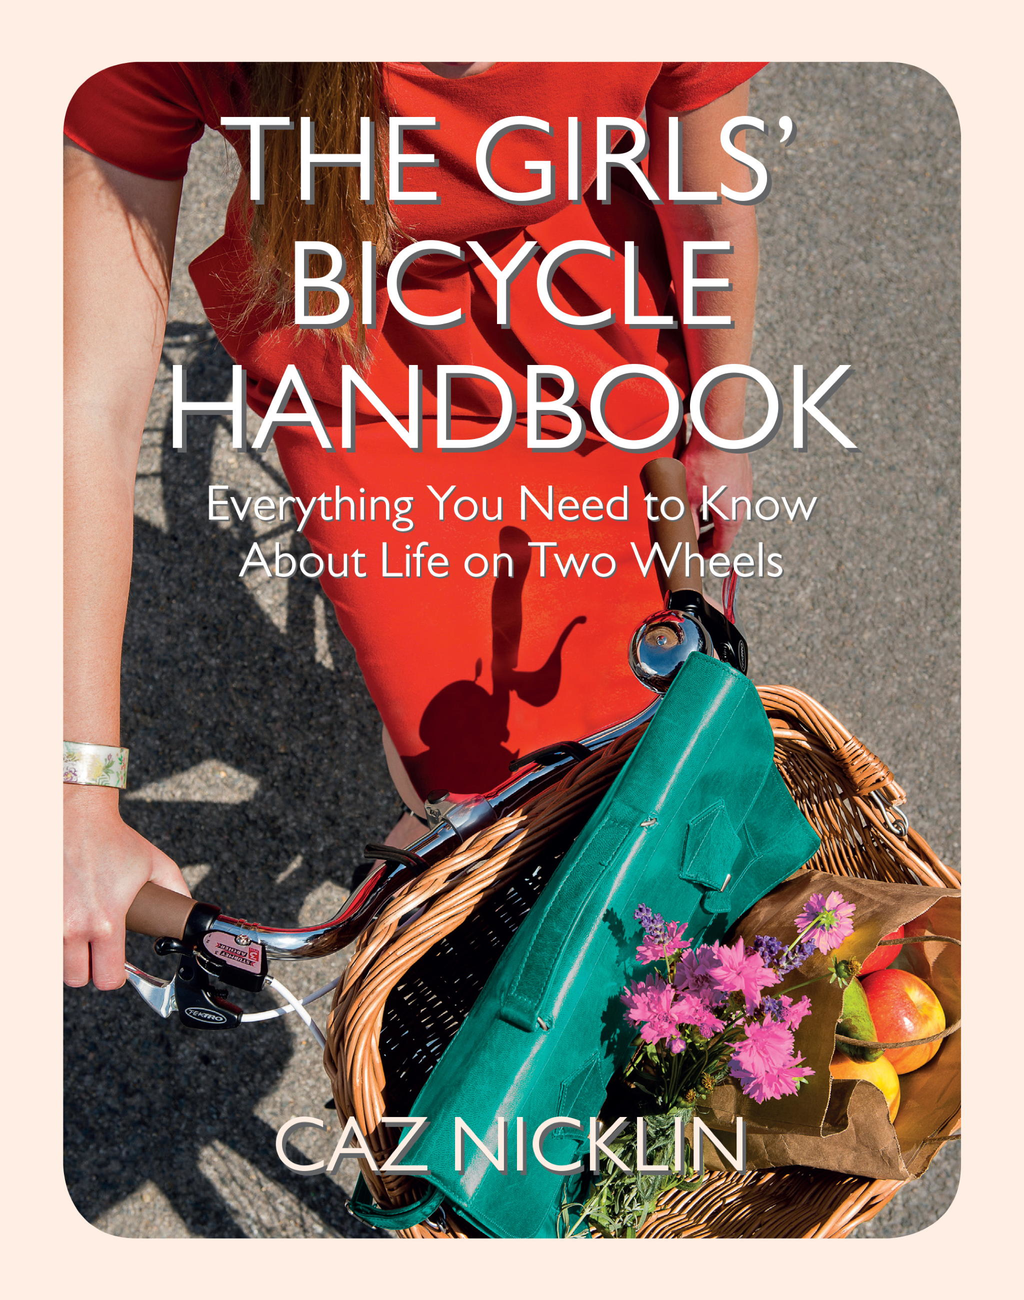 The Girls' Bicycle Handbook Everything You Need to Know About Life on Two Wheels